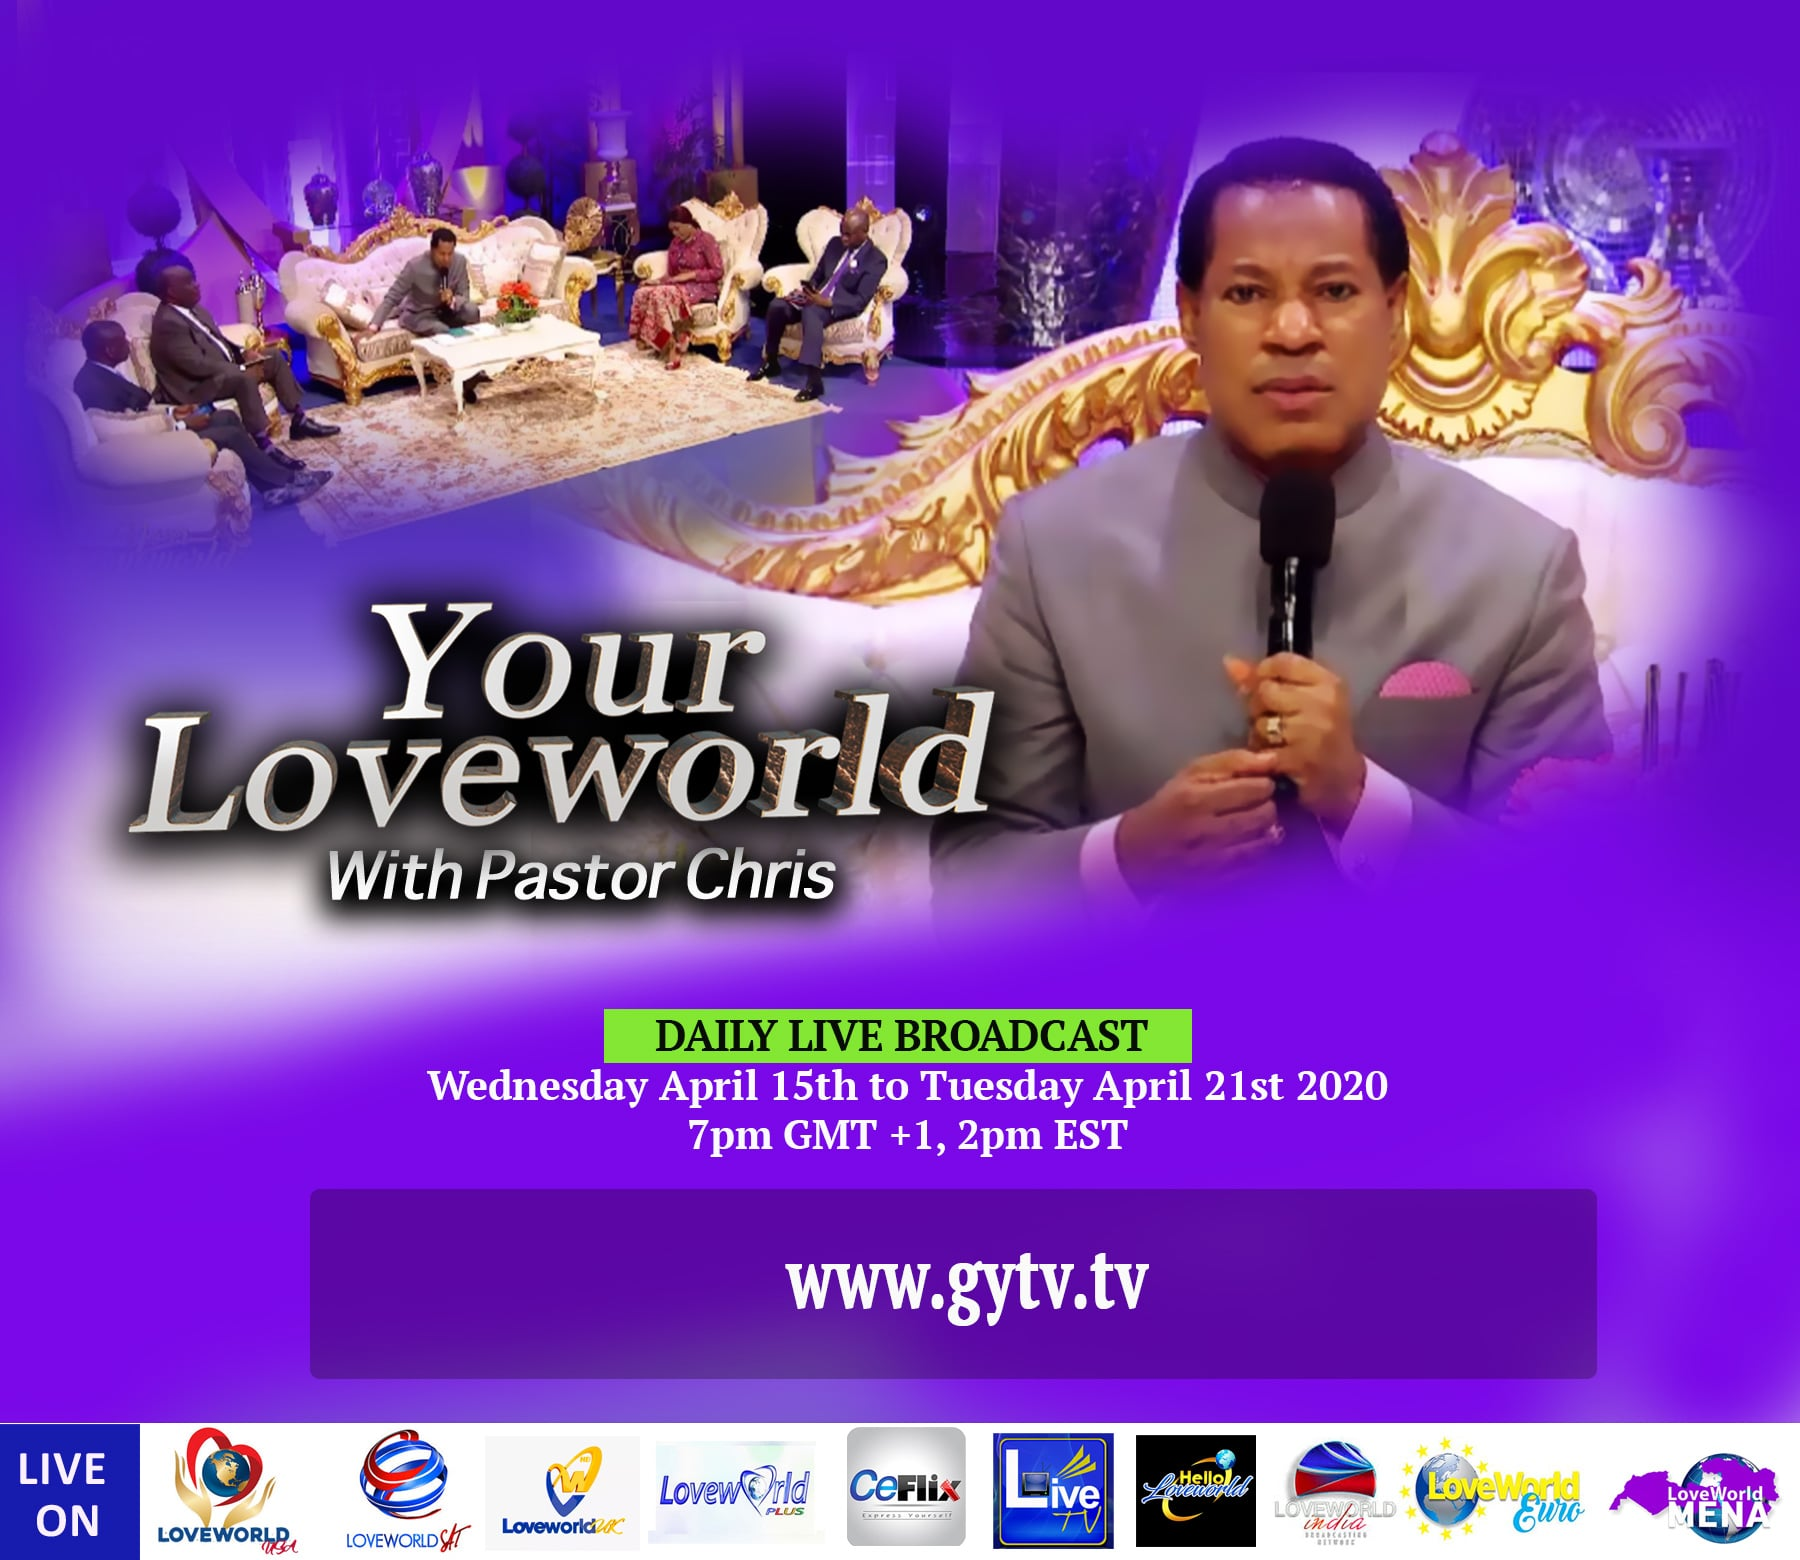 Watch Your Loveworld with Pastor Chris on GYTV